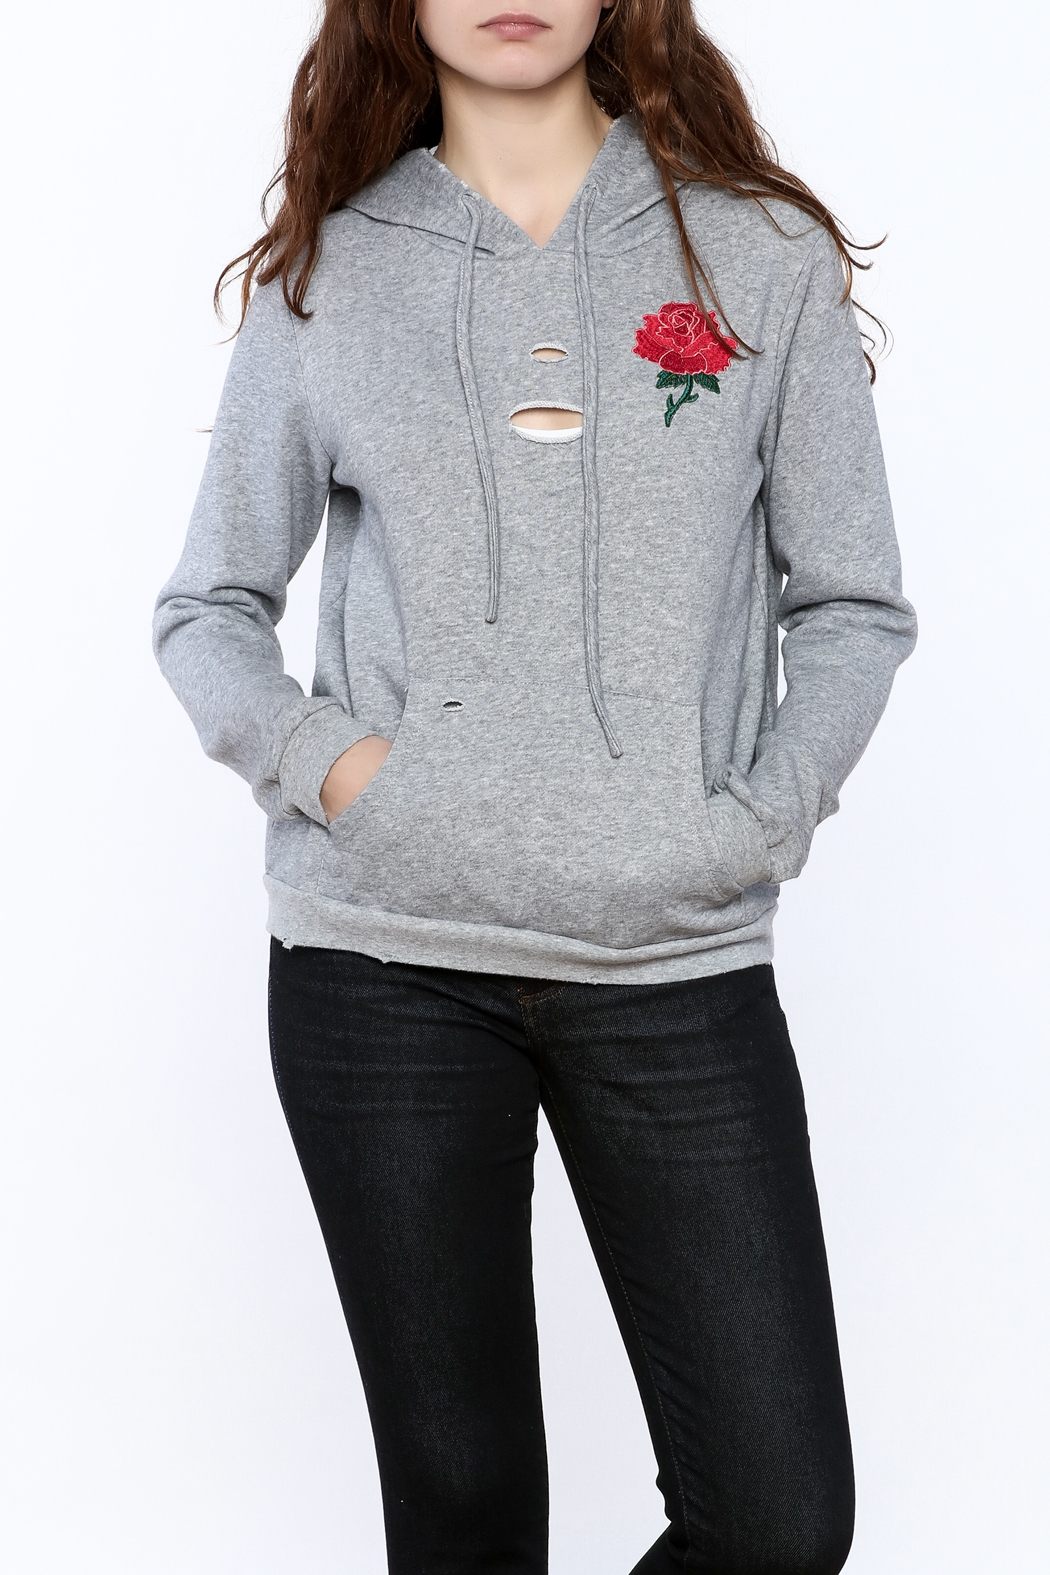 Honey Punch Grey Embroidered Sweater - Main Image